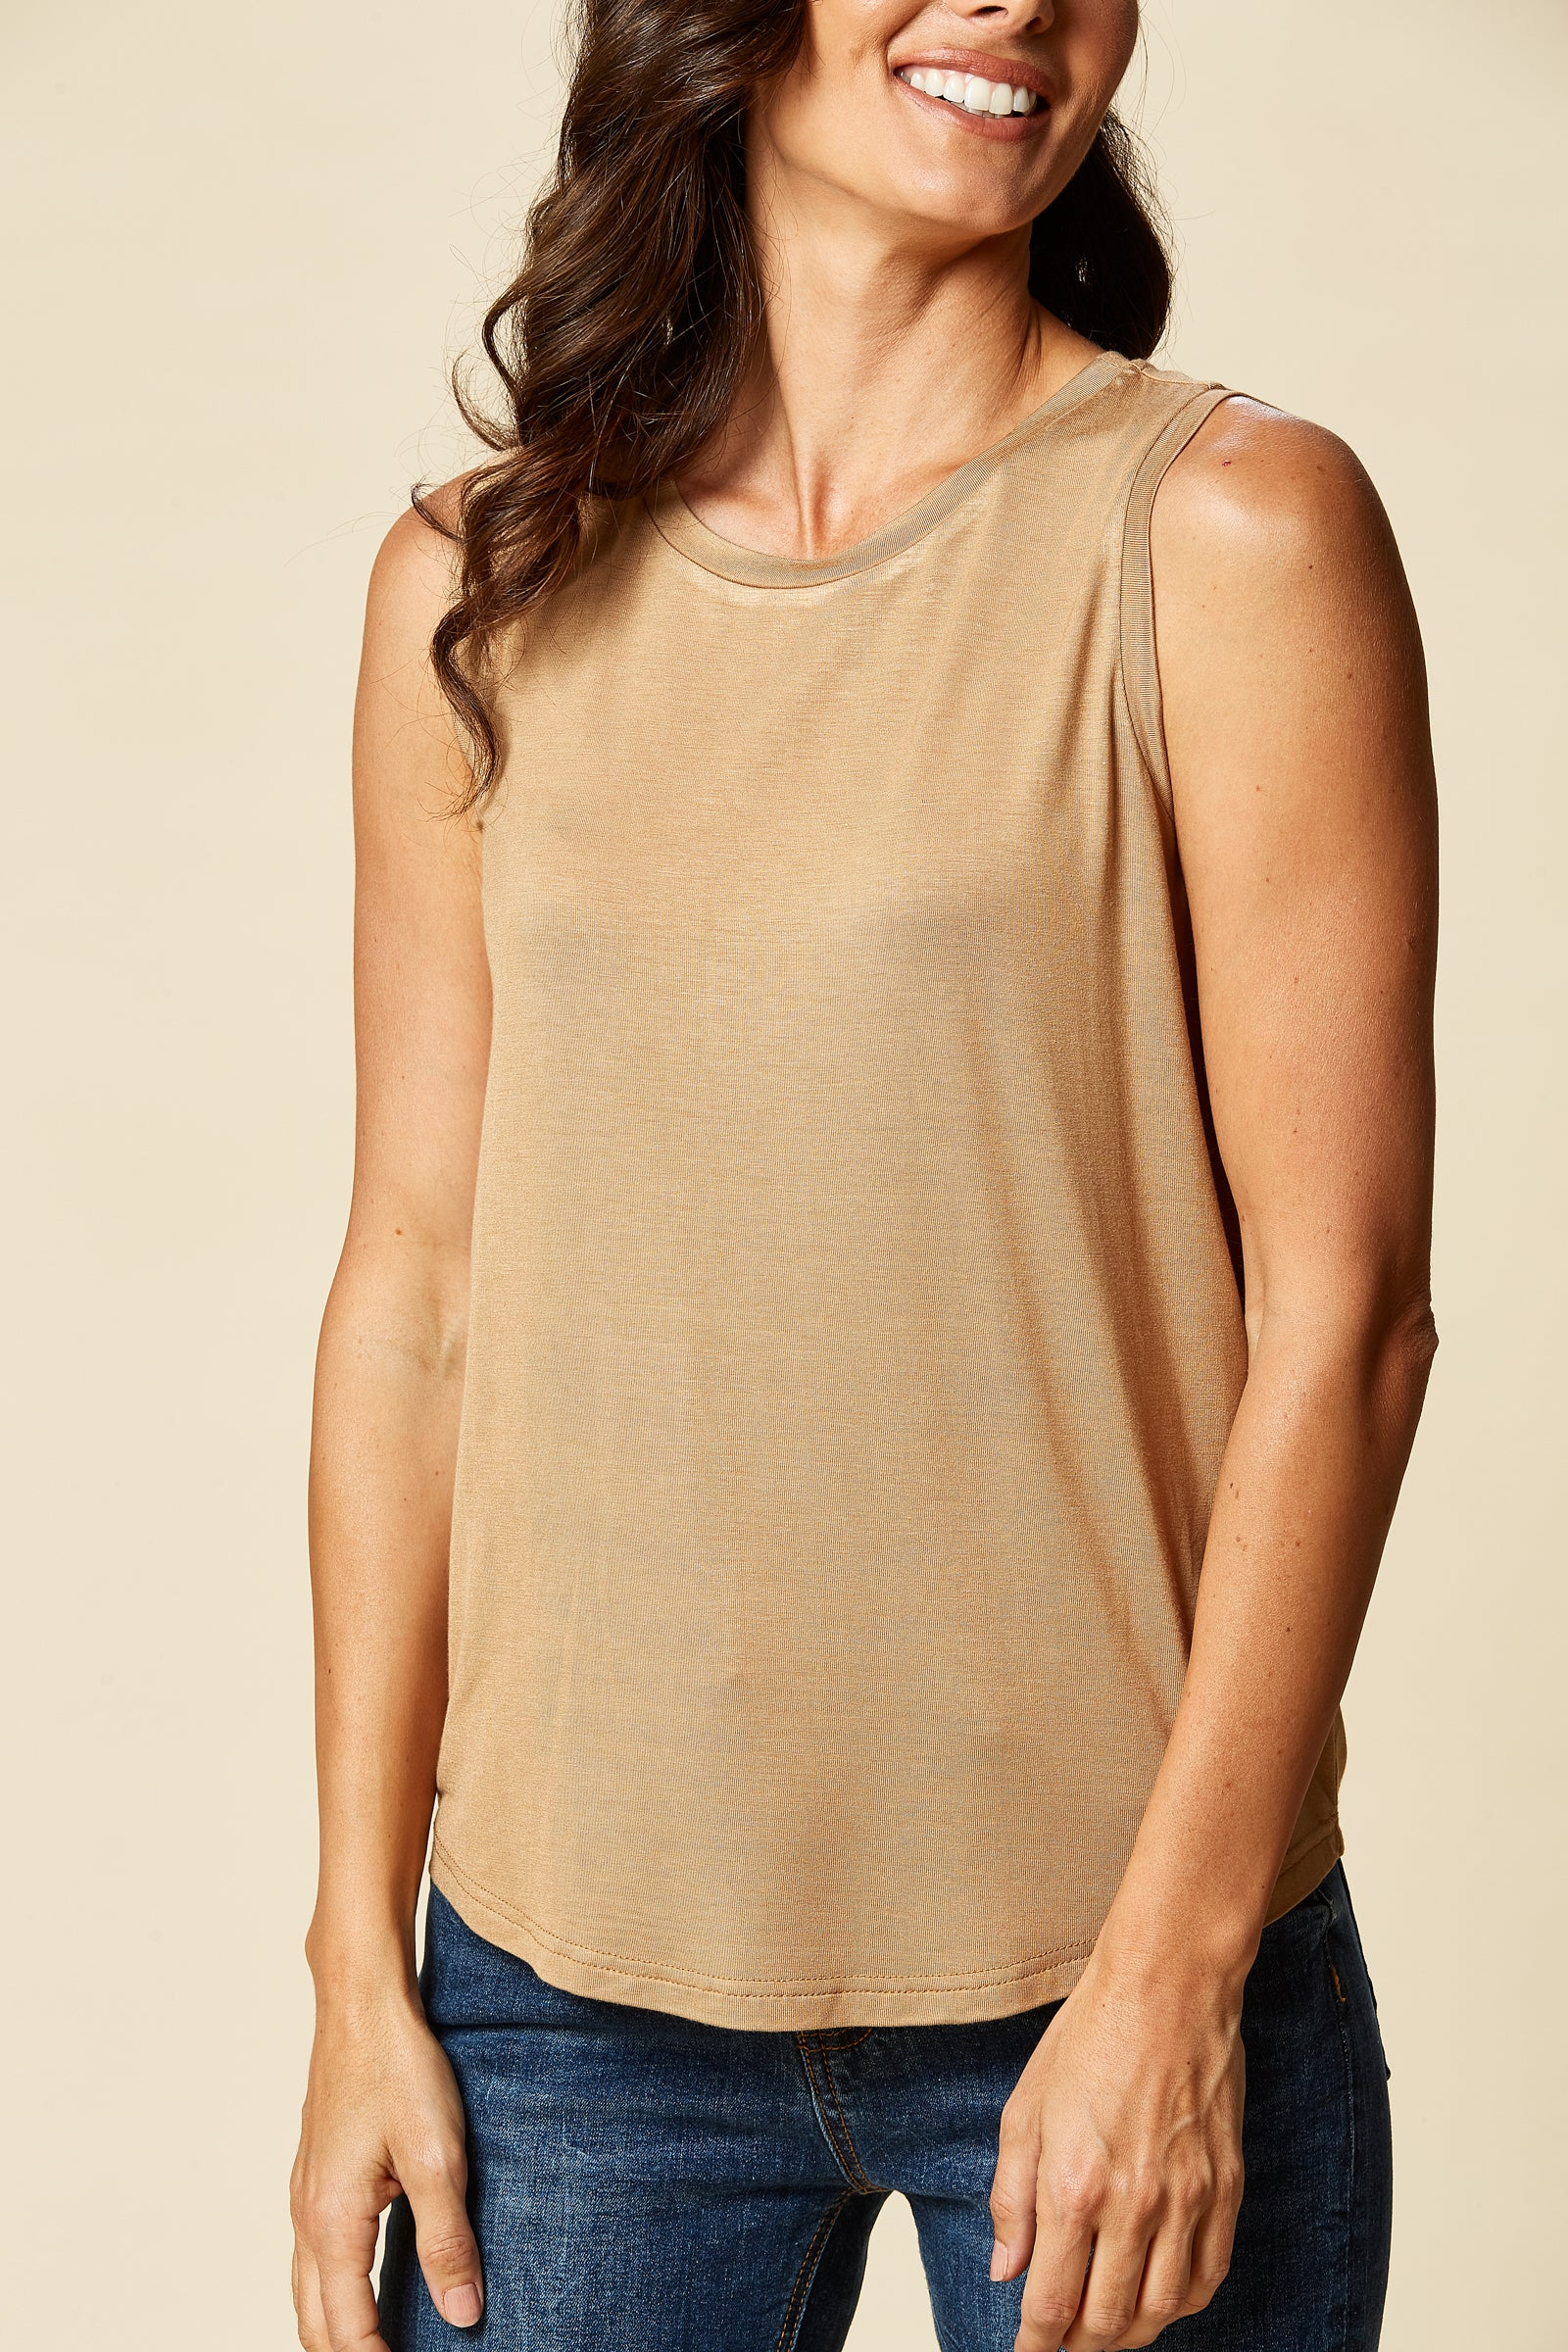 Sorella Vest - Sierra - eb&ive Clothing - Top Sleeveless